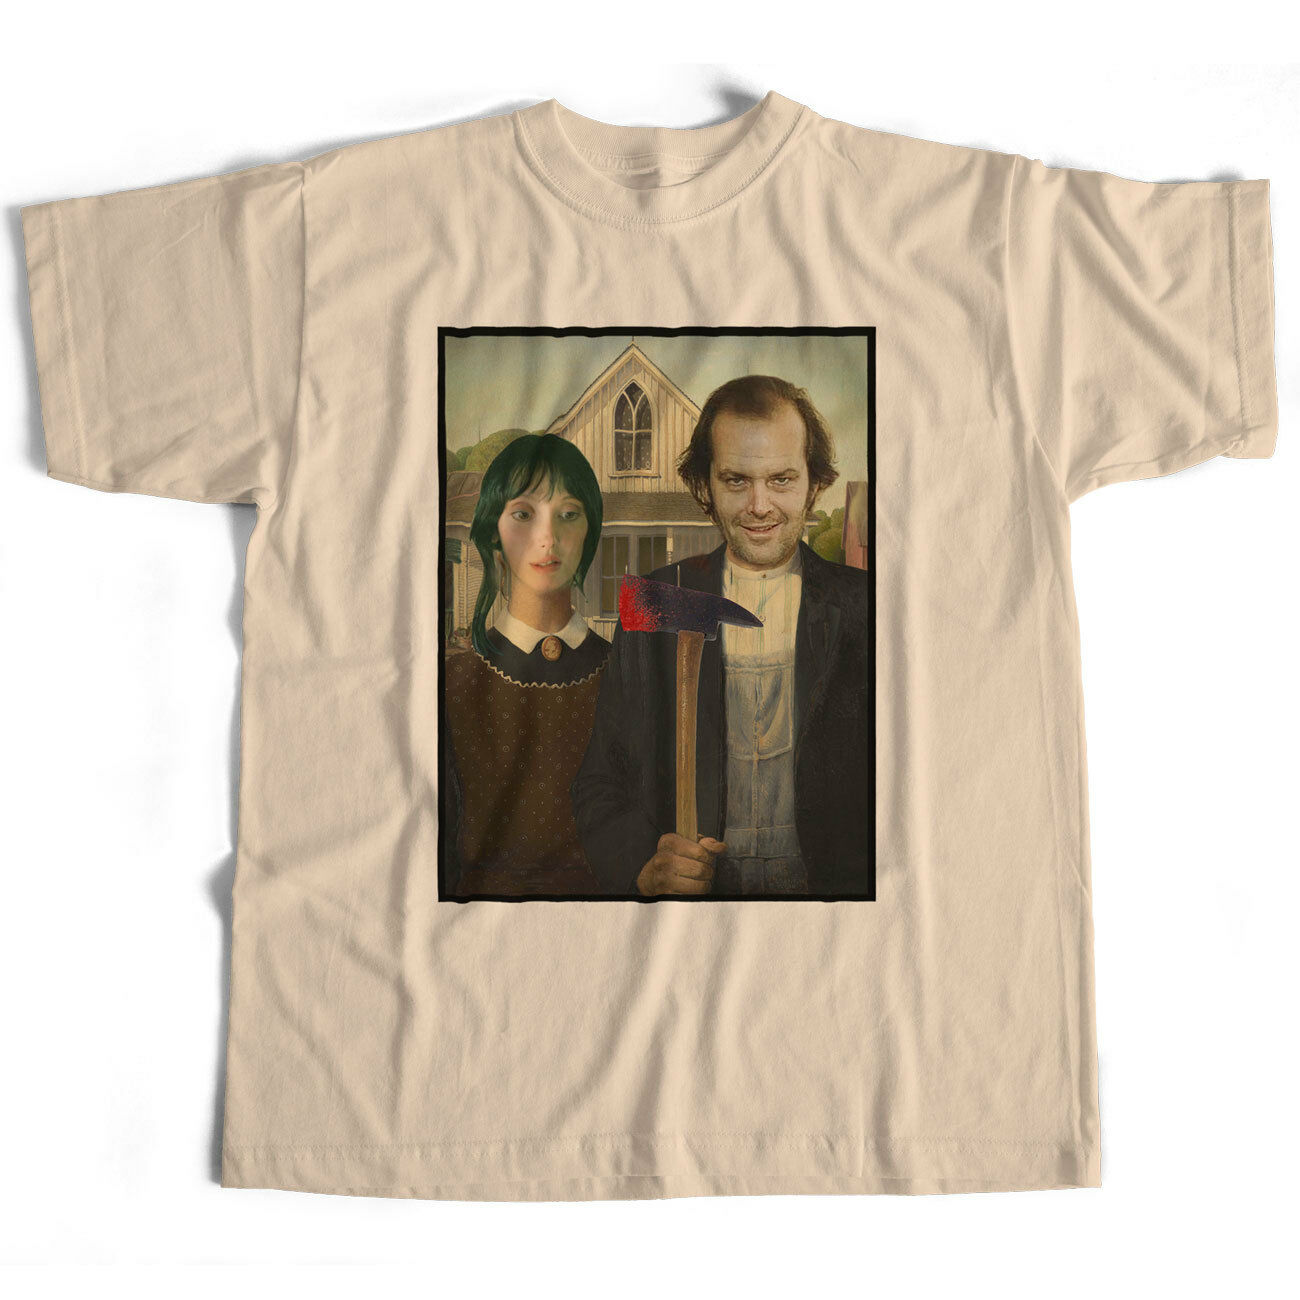 Inspired By The Shining T Shirt - Jack & Wendy American Gothic Horror Kubrick